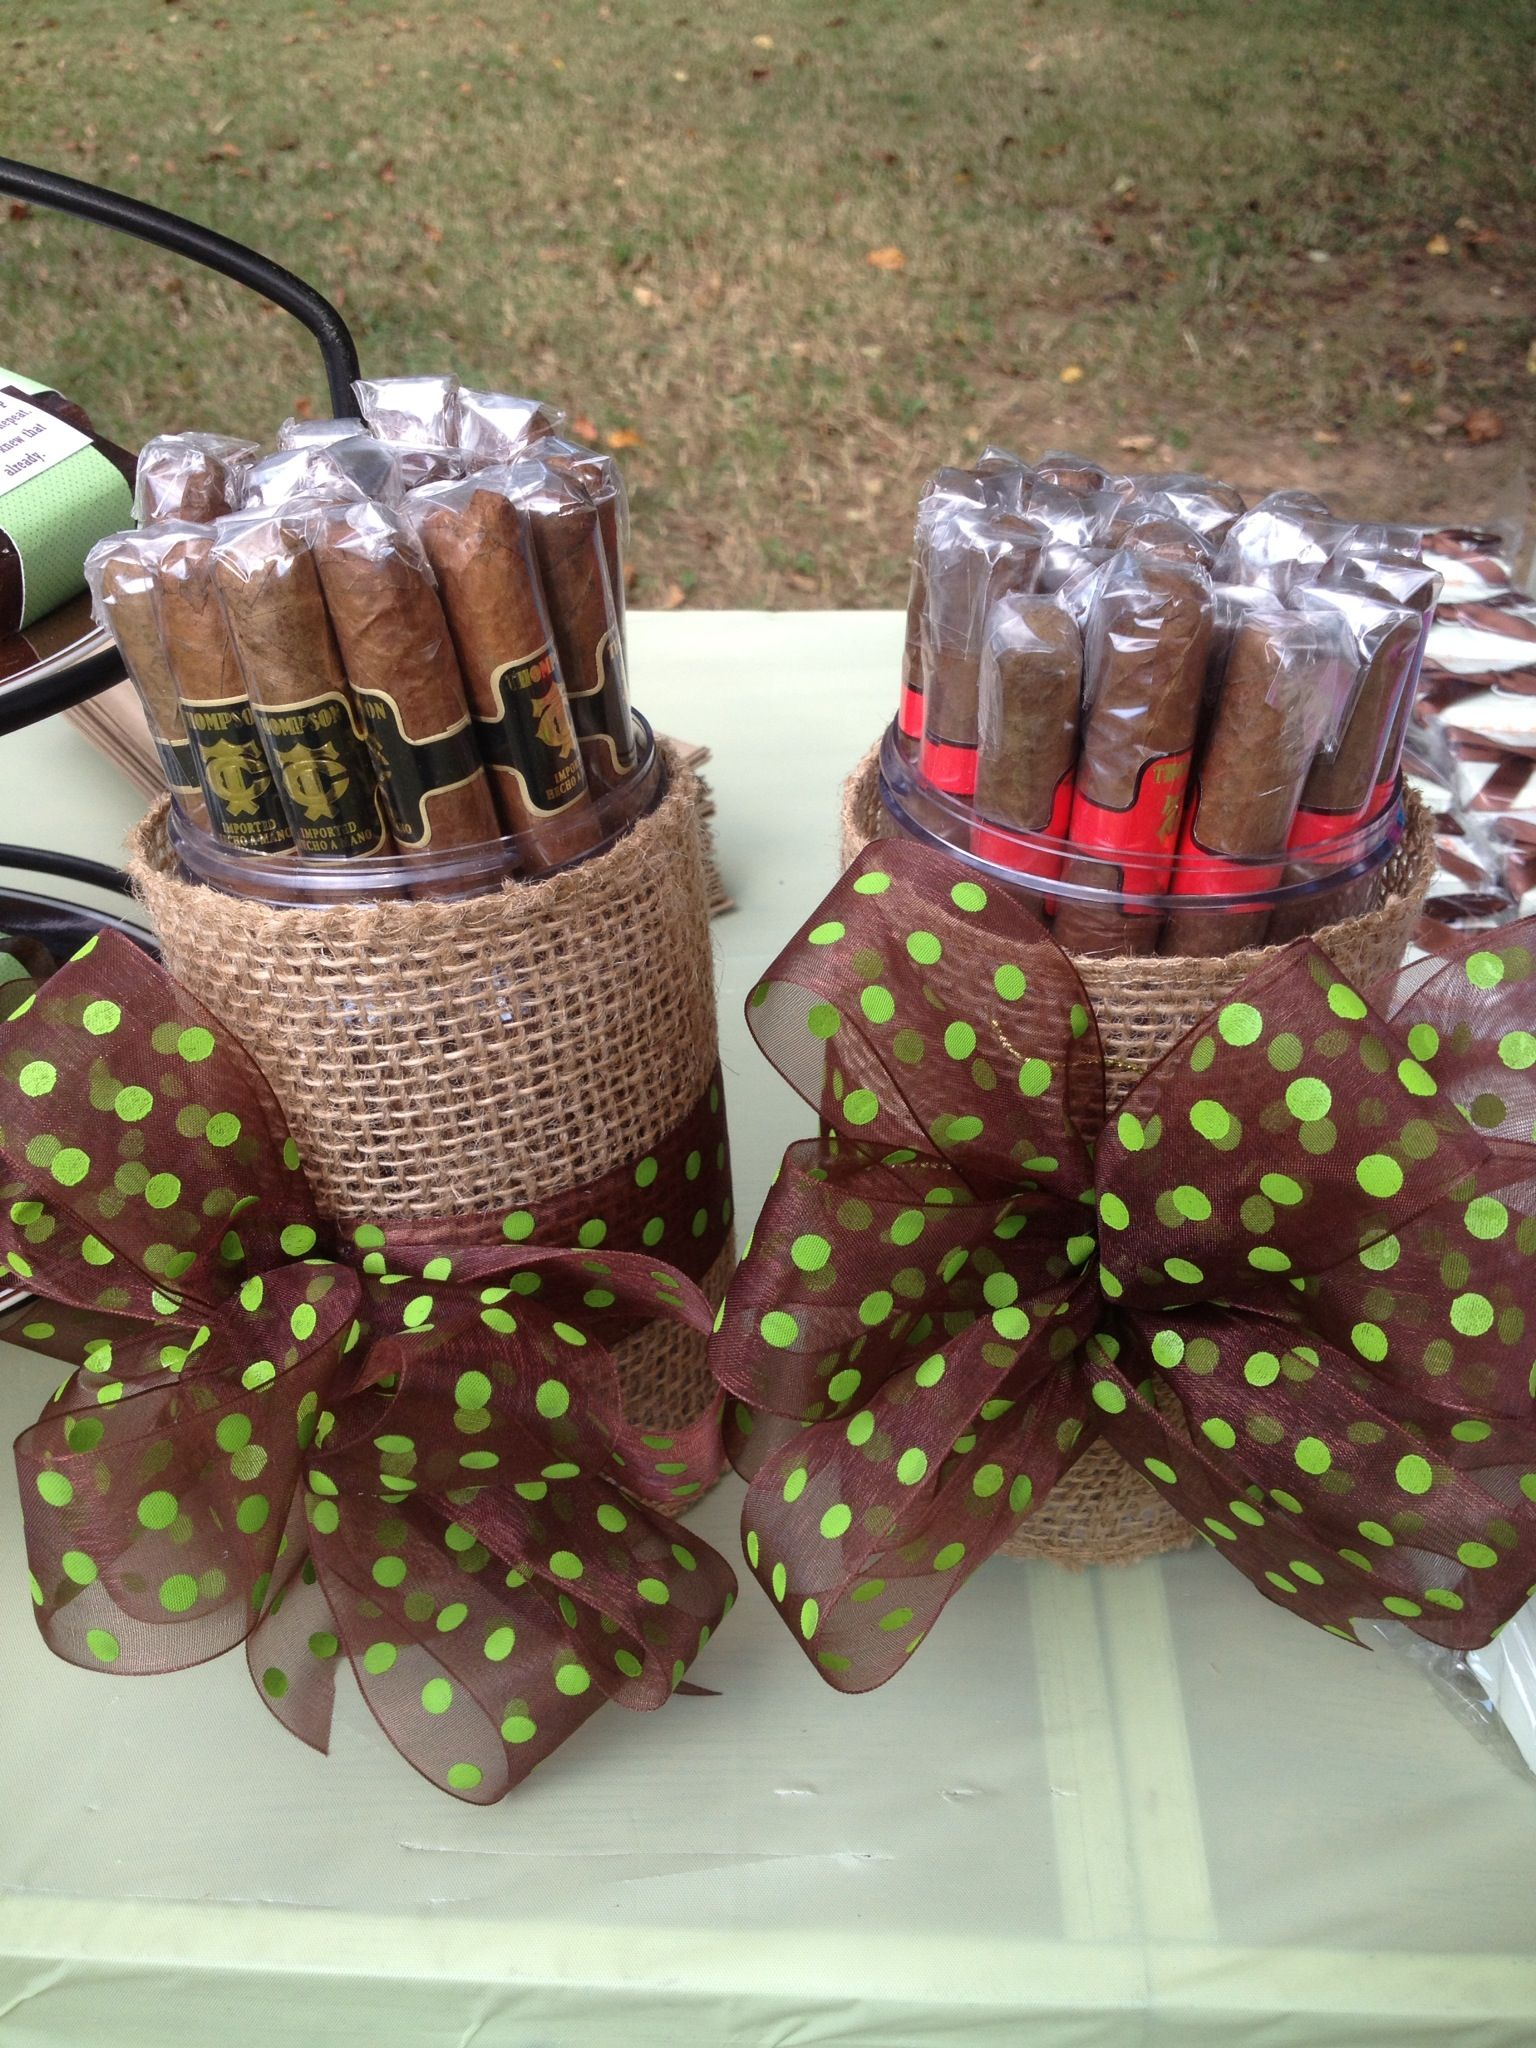 Co Ed Baby Shower Favors Cigars Diaper Party Pinterest Shower